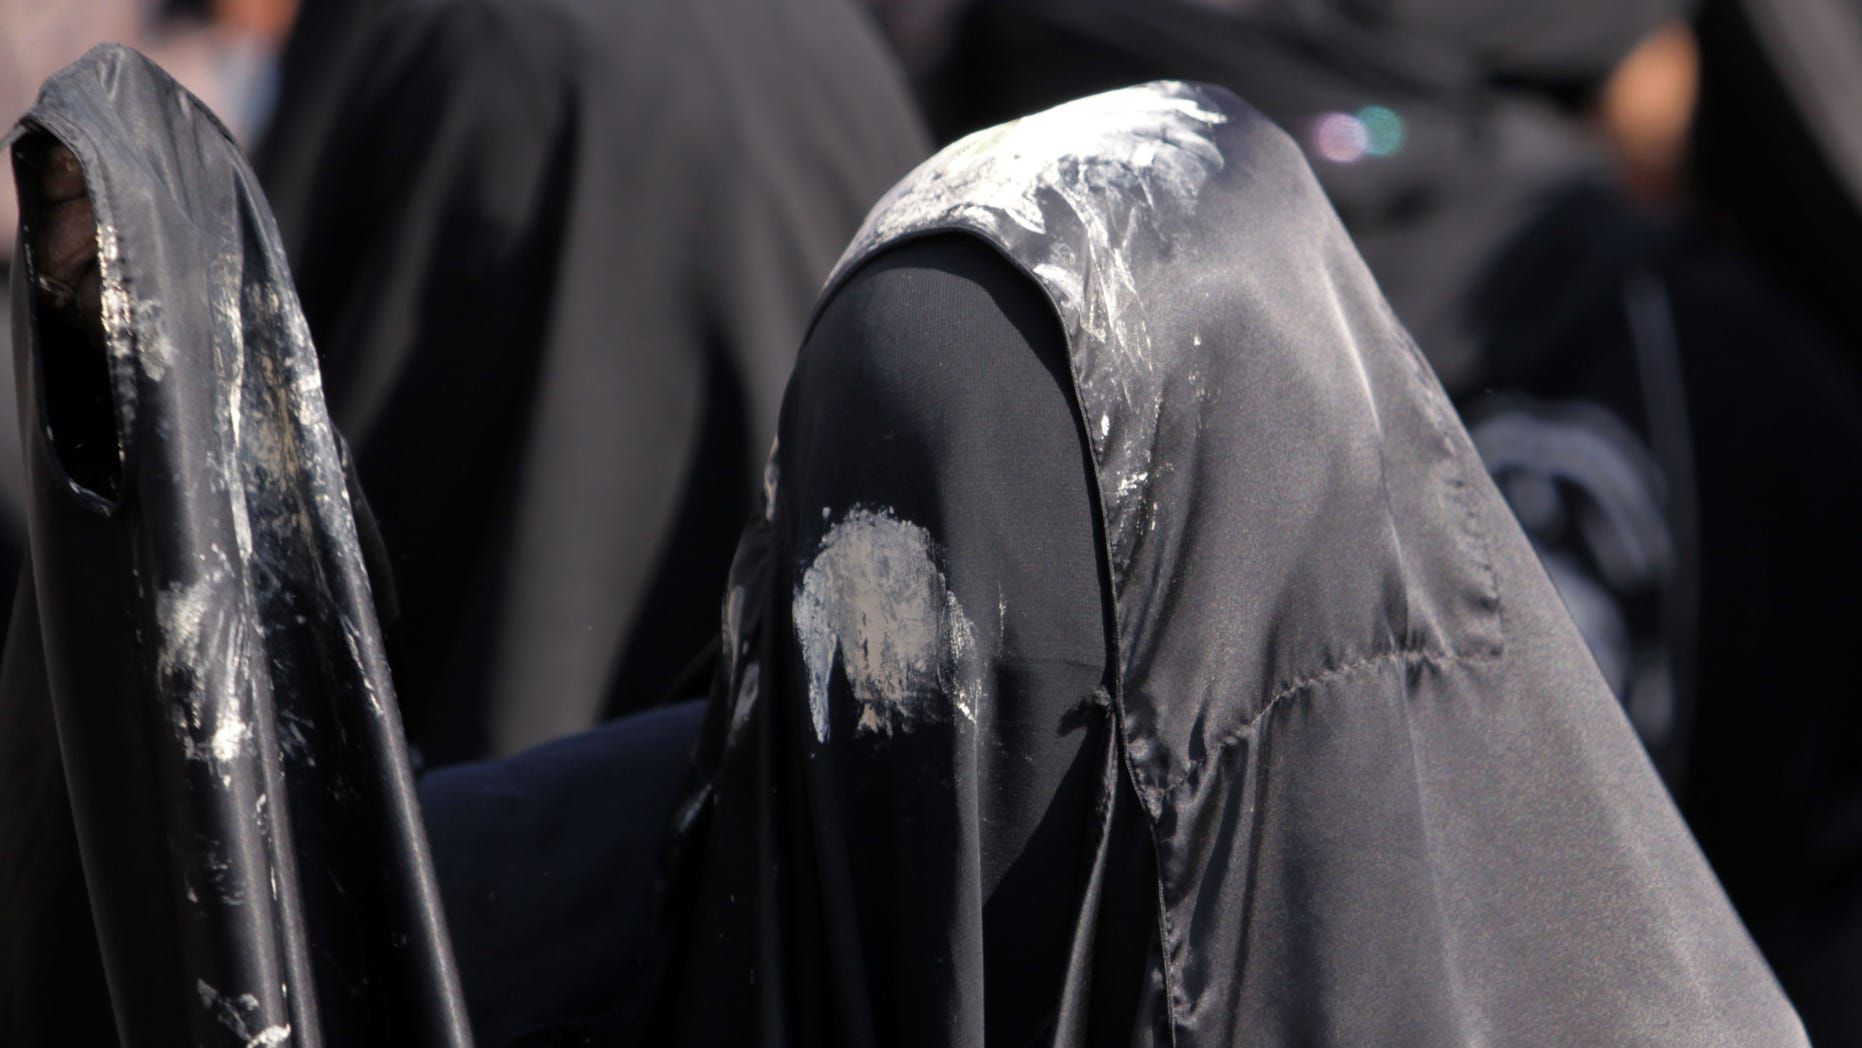 Dec. 6, 2011: A woman participates during a Shiite procession marking Ashura, a period of mourning for Imam Hussein, grandson of Islam's founding prophet Mohamed.